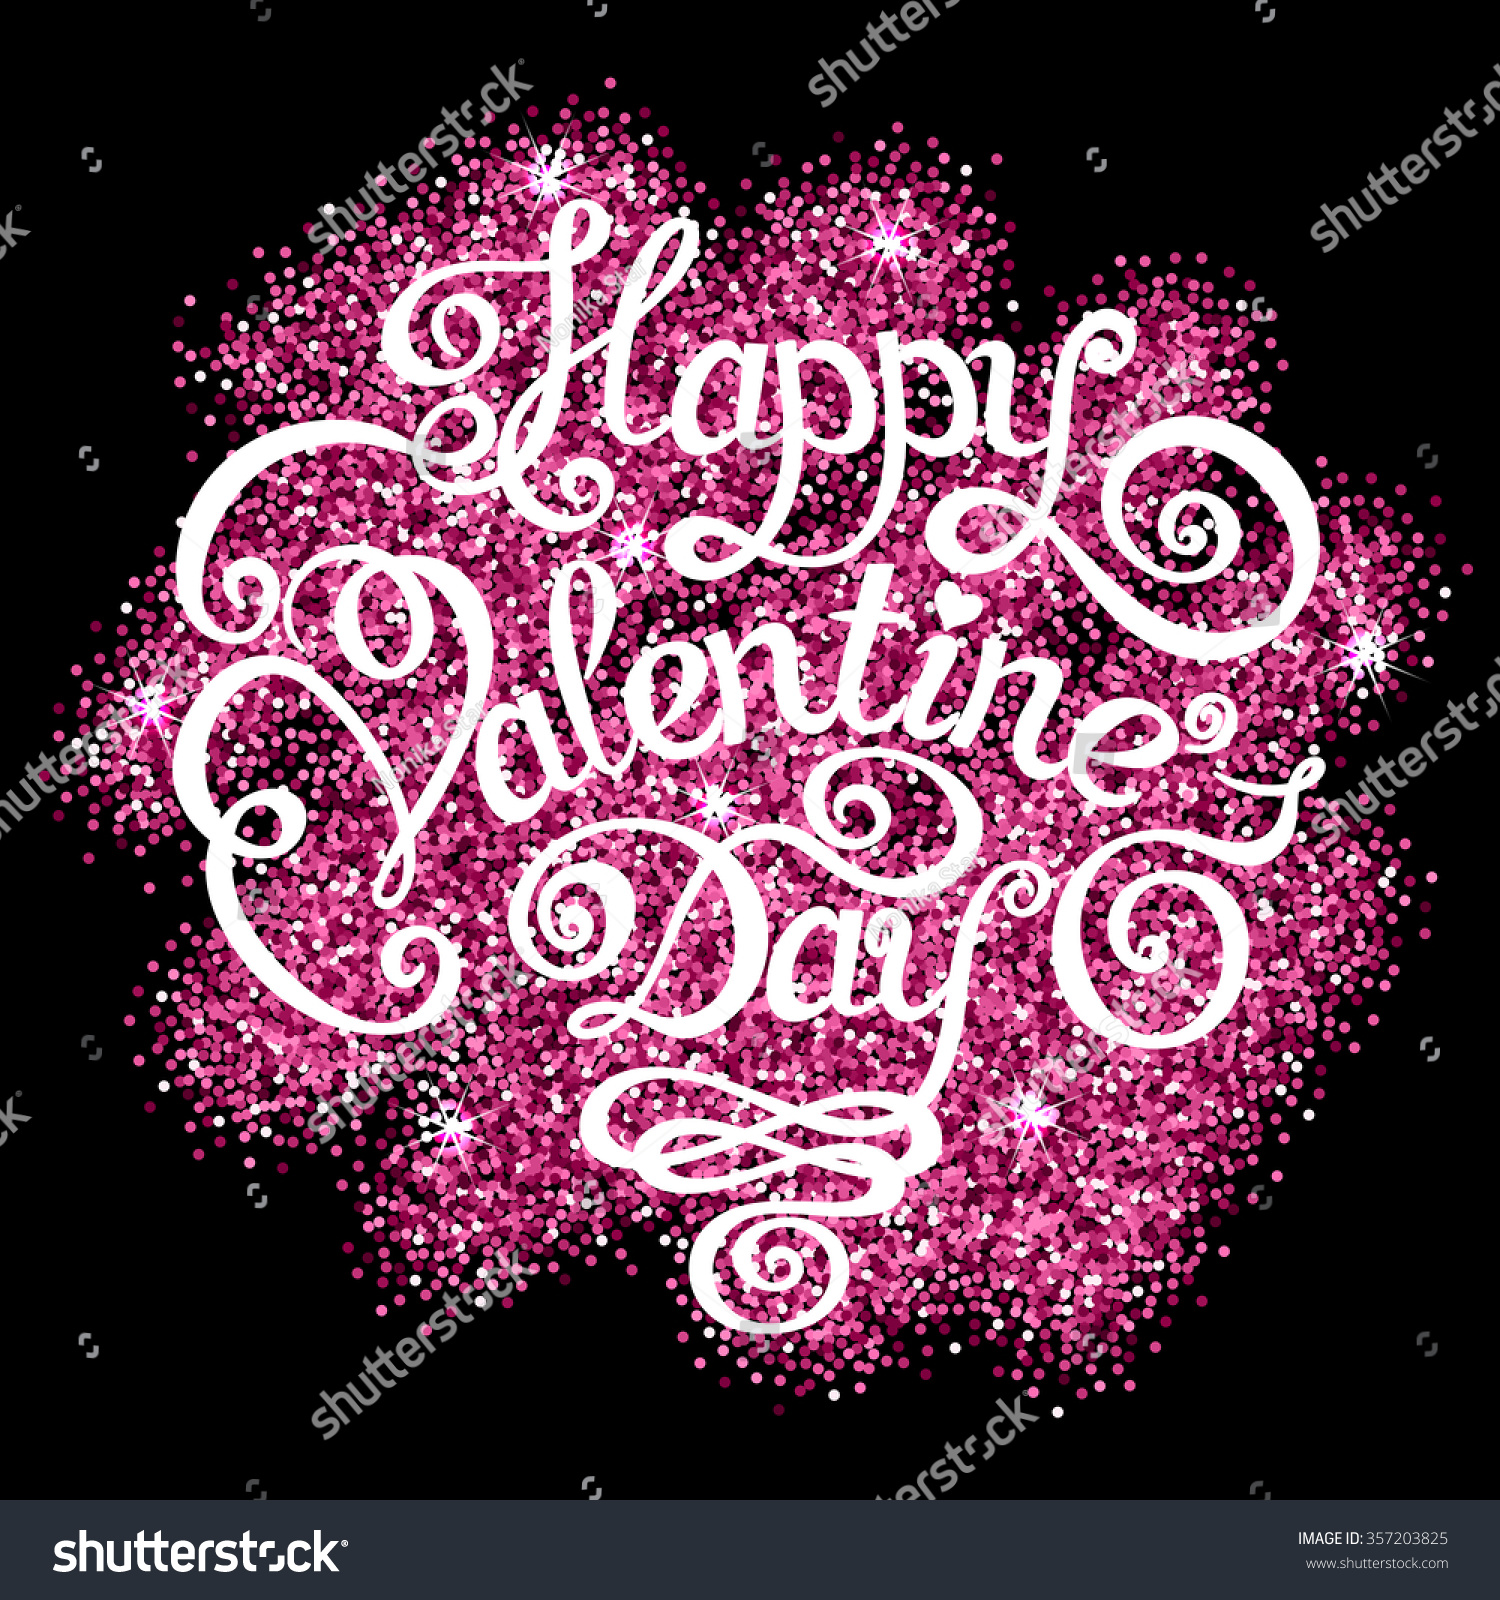 happy valentines day text message with sparkling confetti on black background hand drawn lettering - Happy Valentines Day Text Message